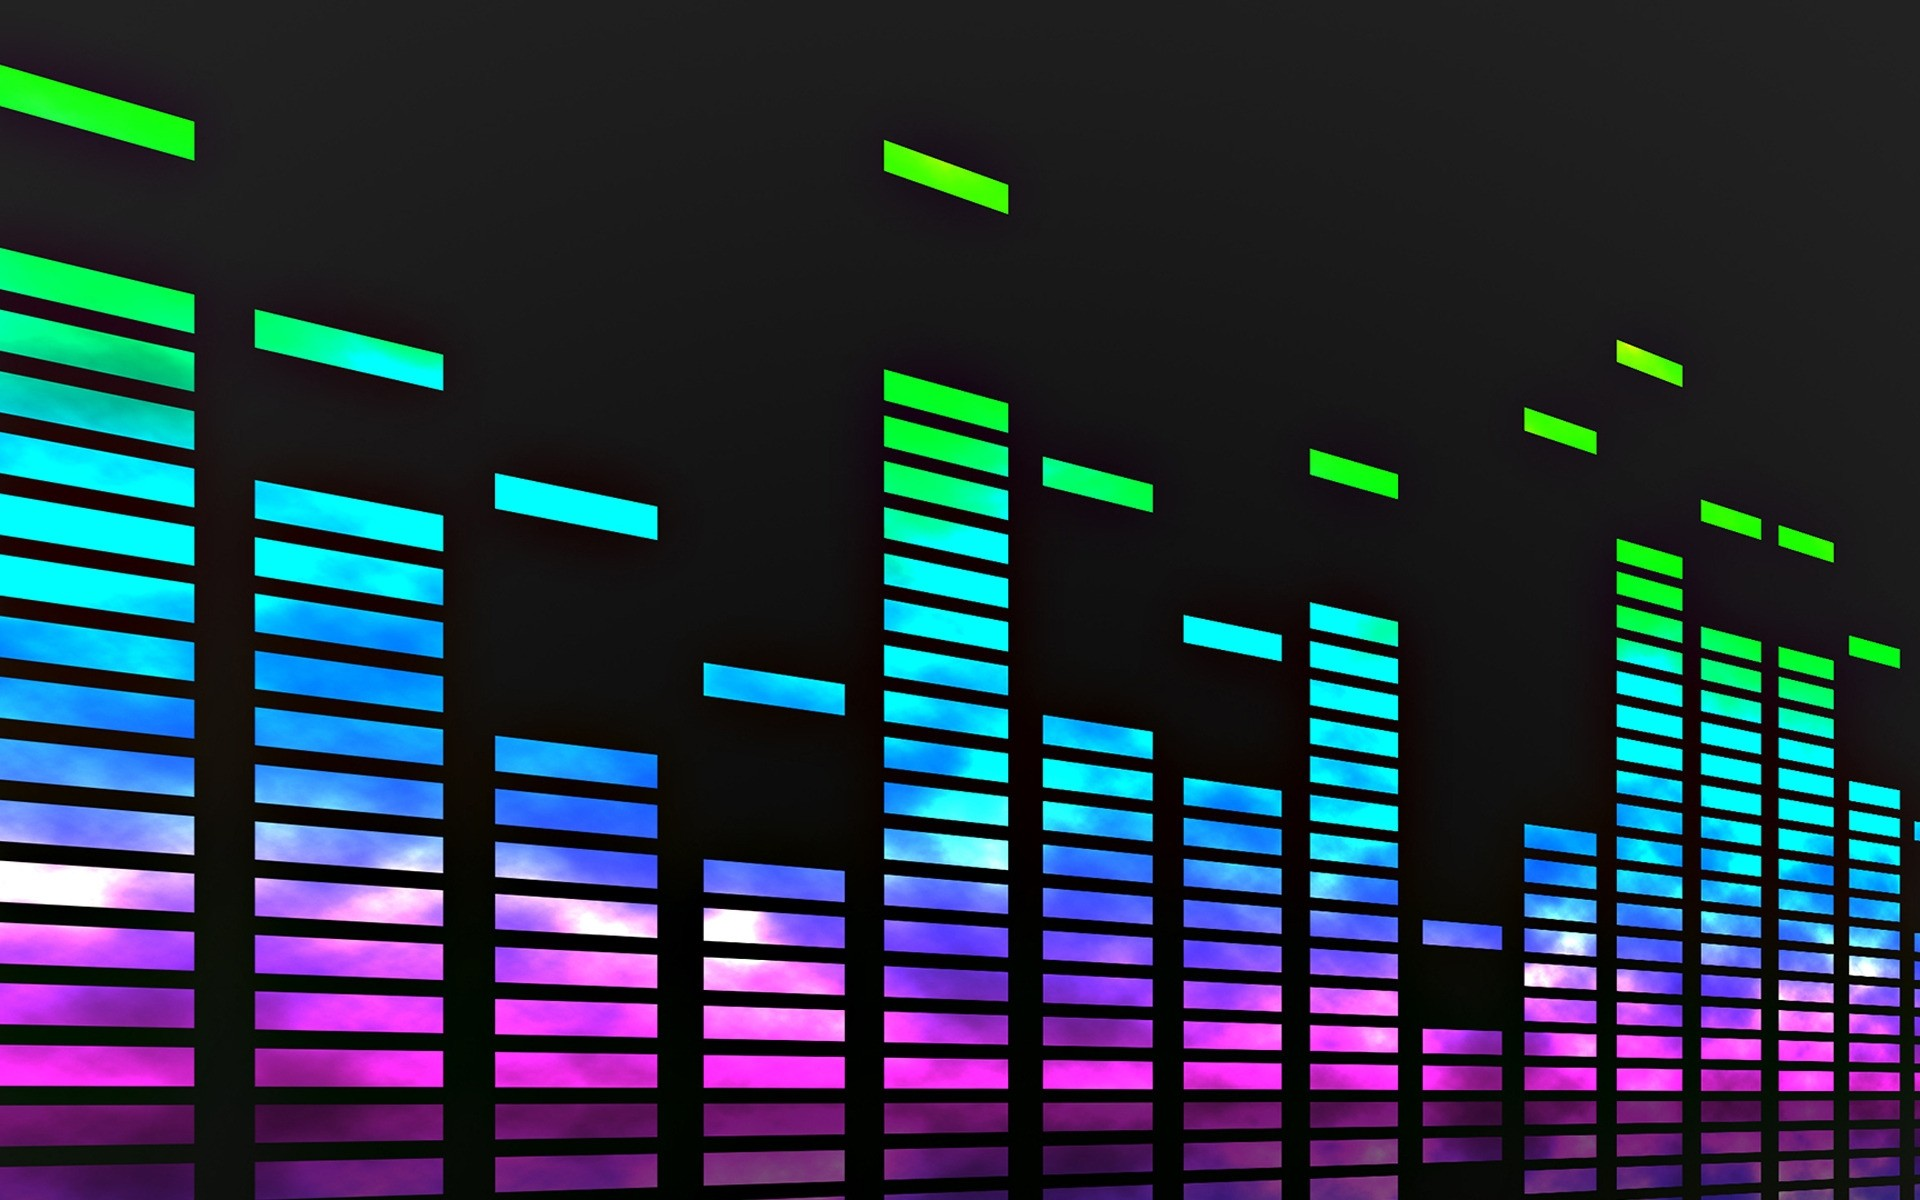 Amazing Wallpaper Music Frequency - 328851095386394  Perfect Image Reference_45618.jpg